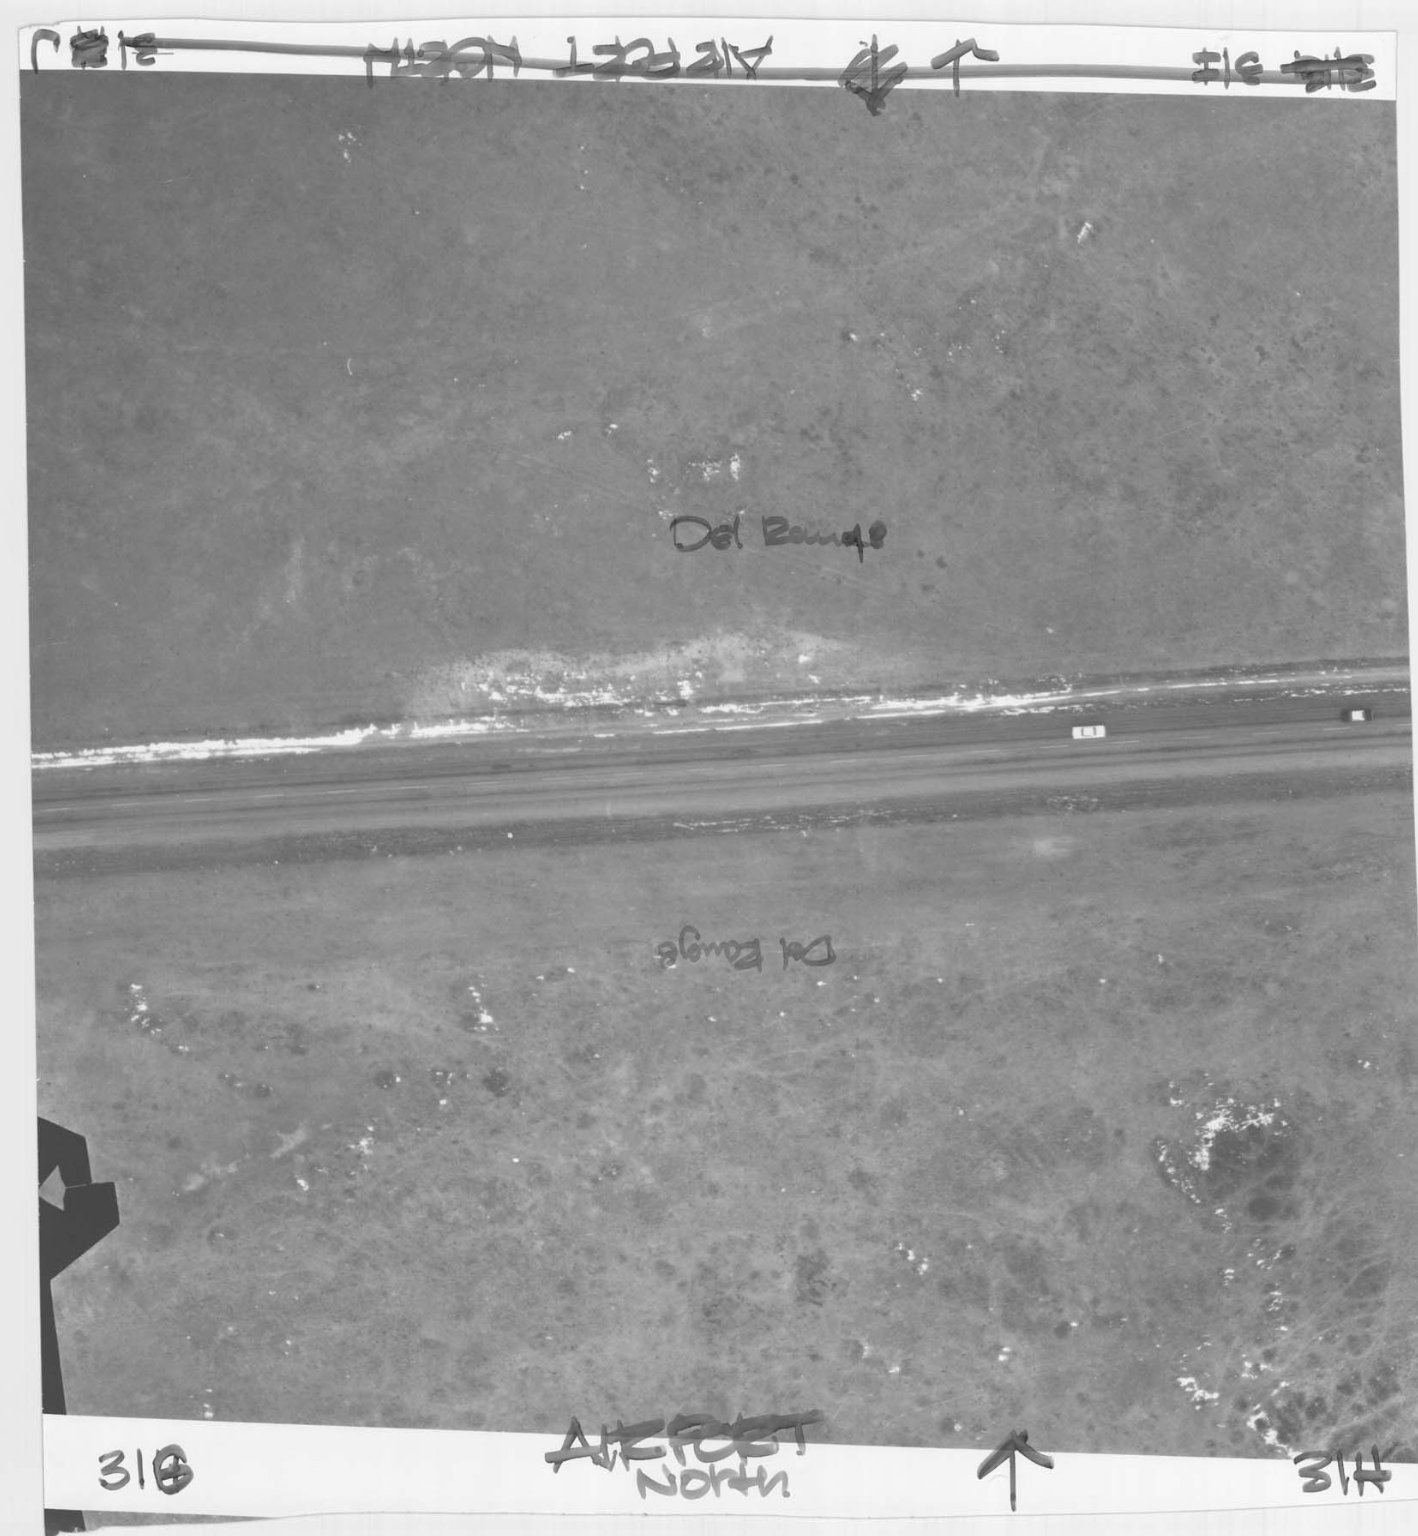 CHEYENNE CITY ENGINEER AERIAL PHOTO, CHEYENNE AIRPORT NORTH